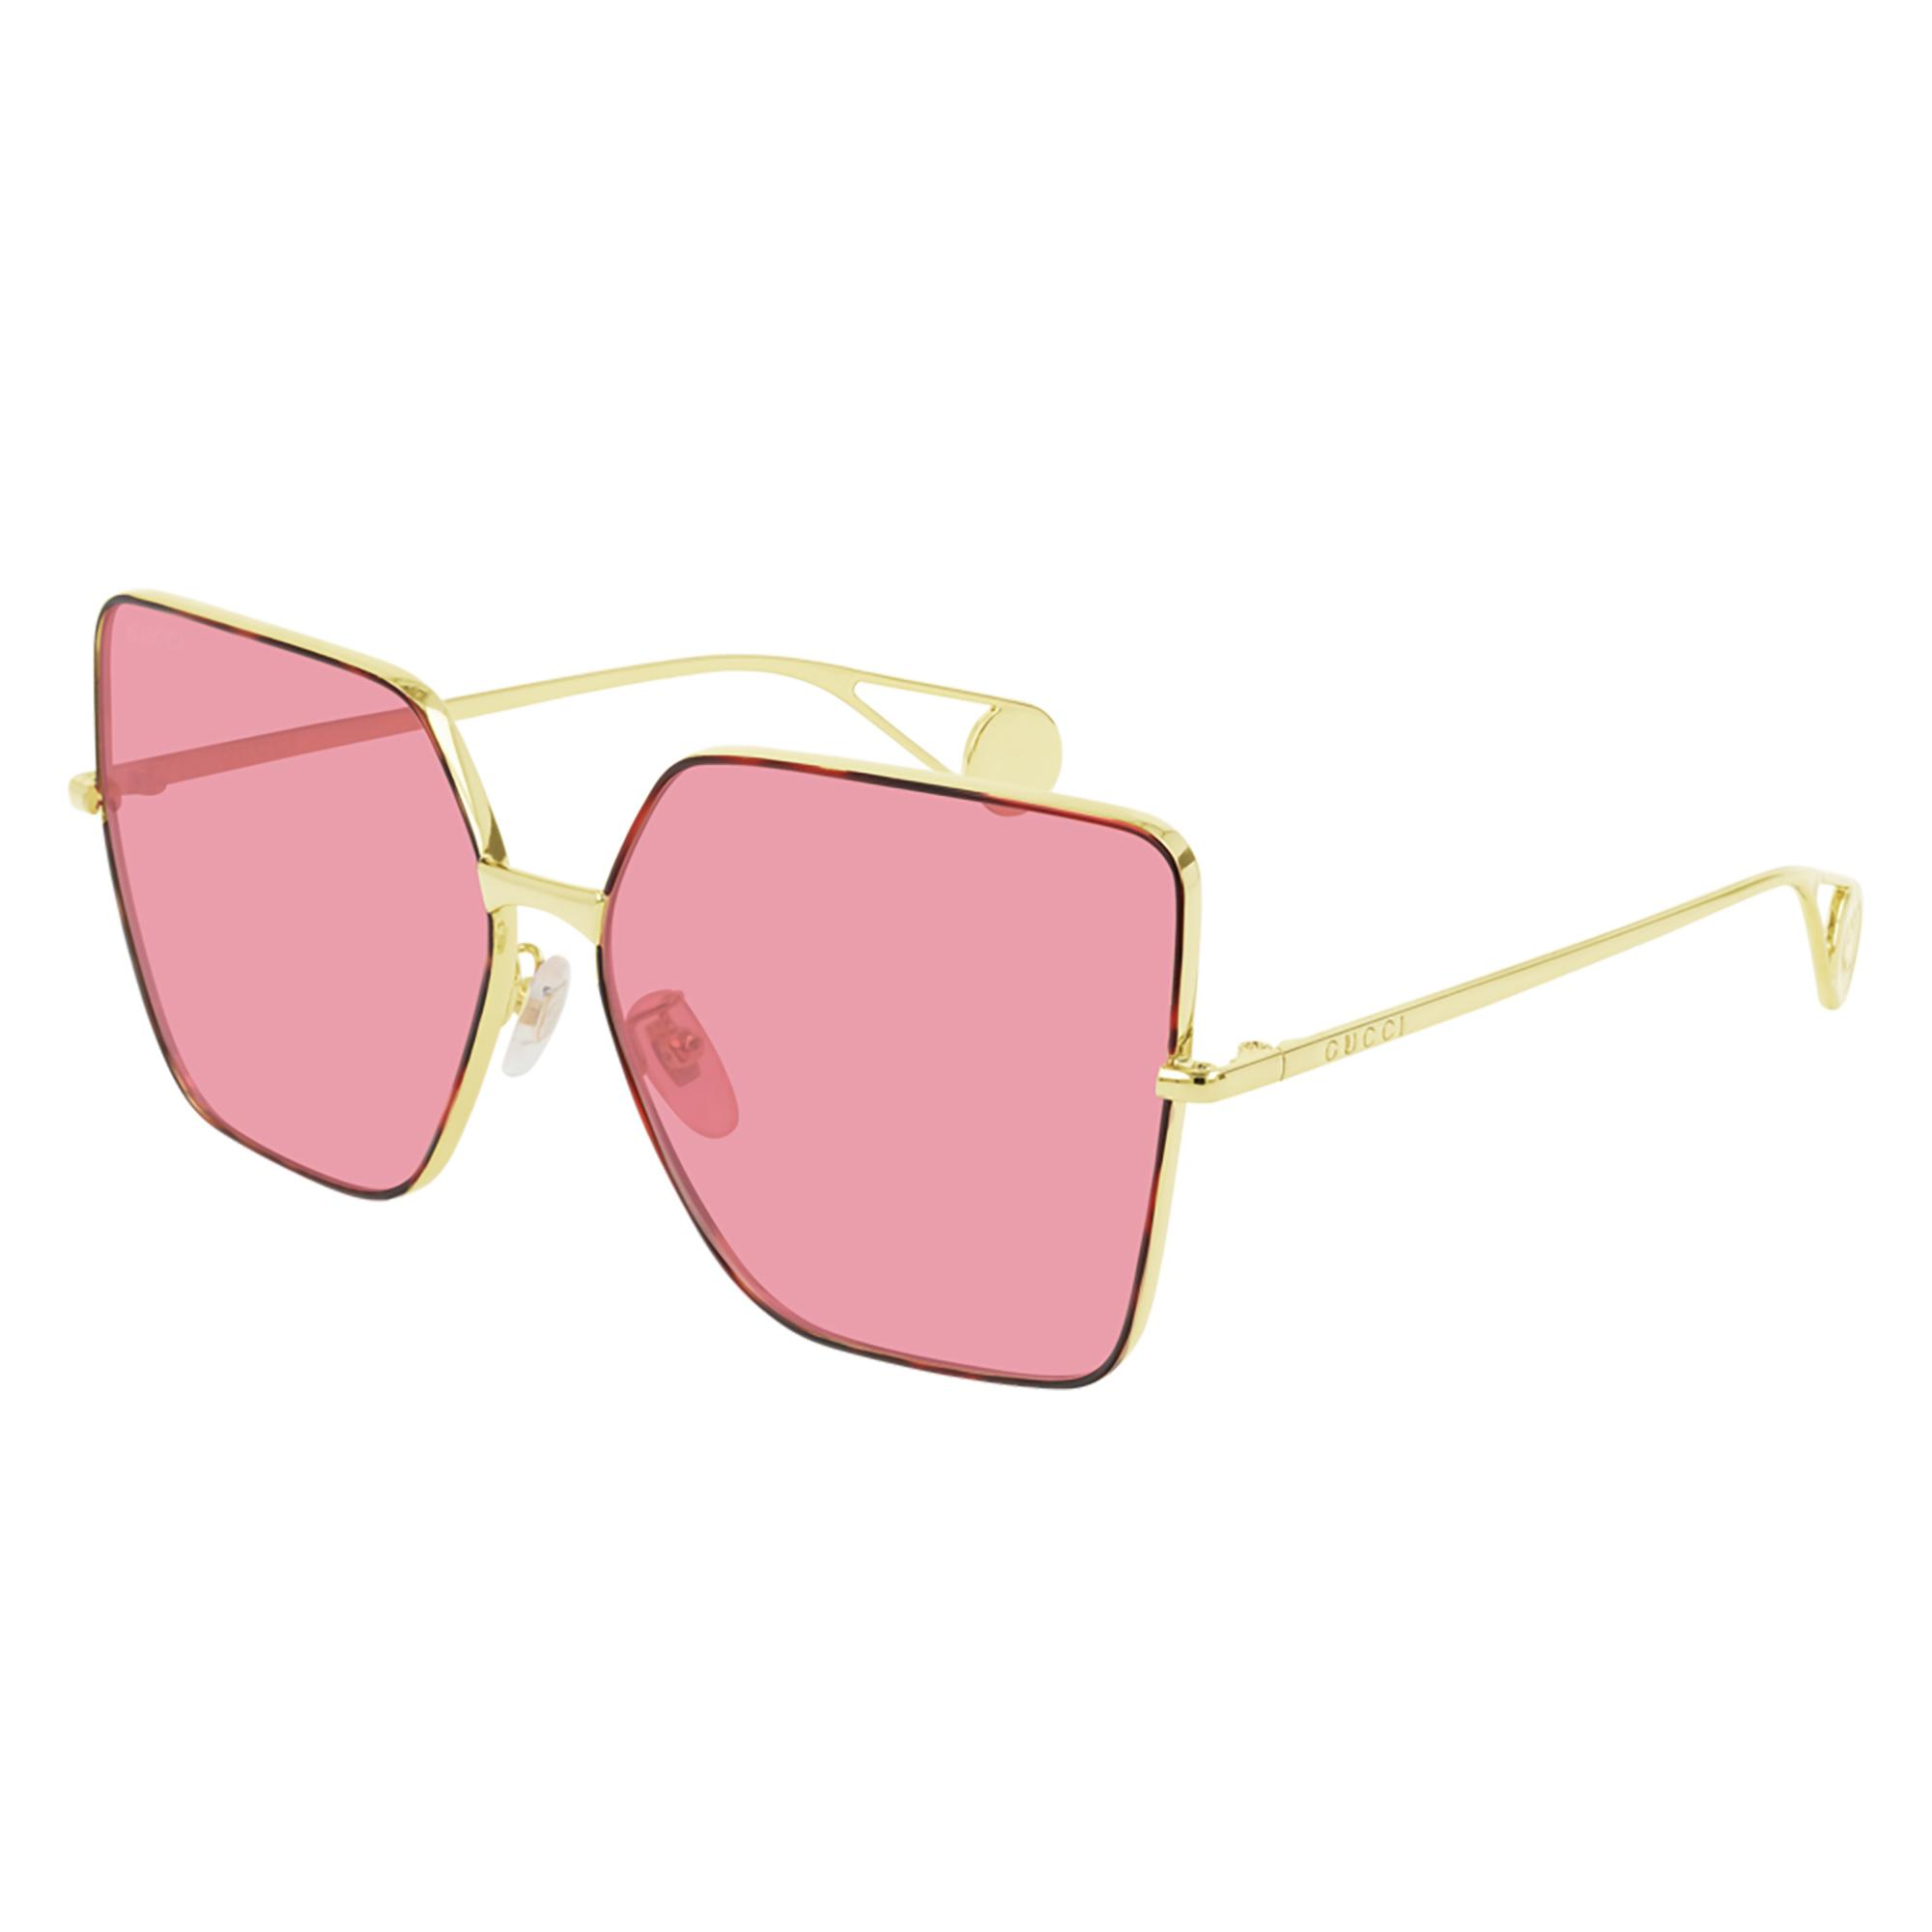 005 gold gold pink